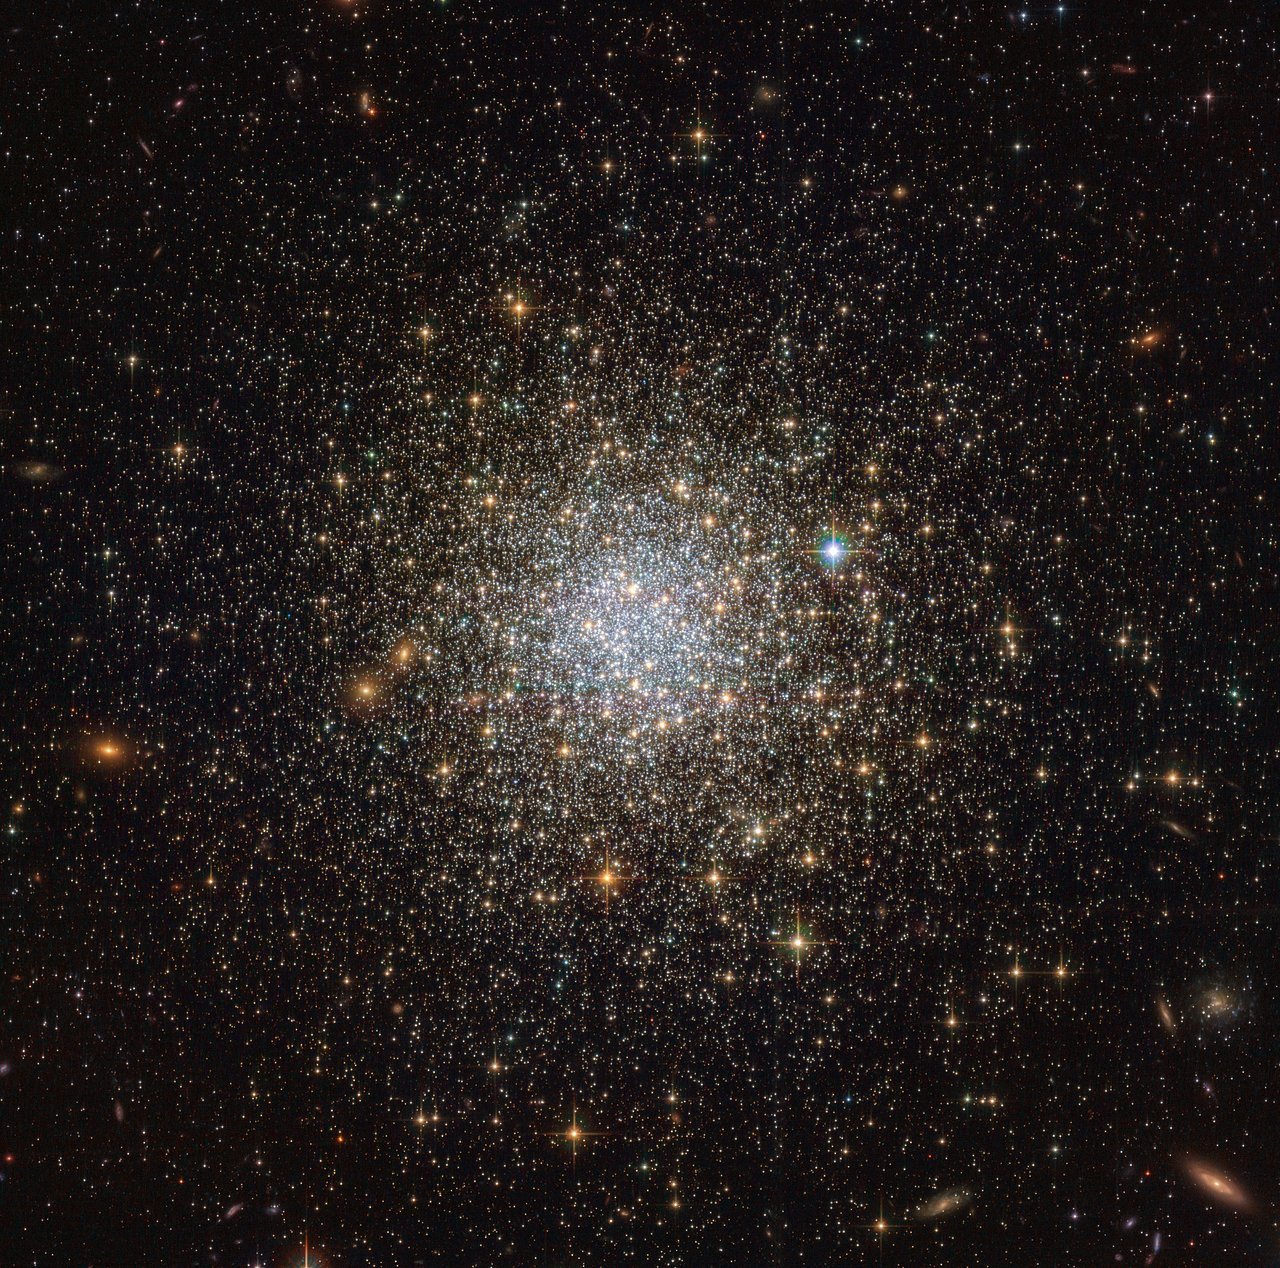 Science Release: Hubble Explores the Formation and Evolution of Star Clusters in the Large Magellanic Cloud